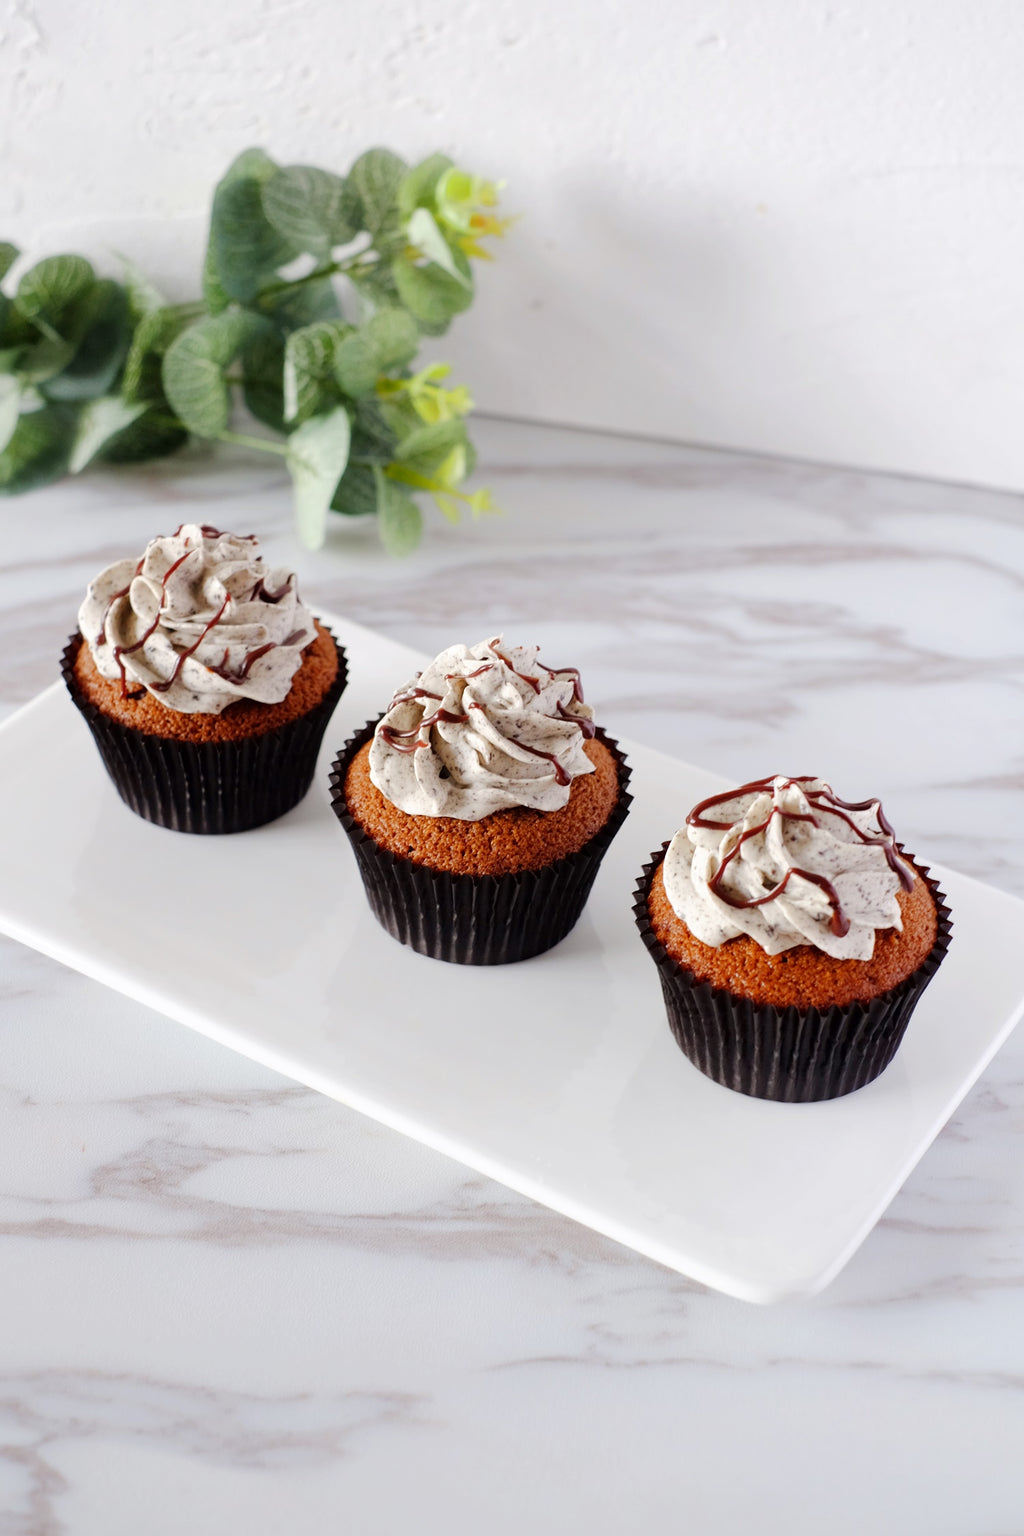 Oreo Chocolate Malt Cupcakes (From $3.80/Pc)